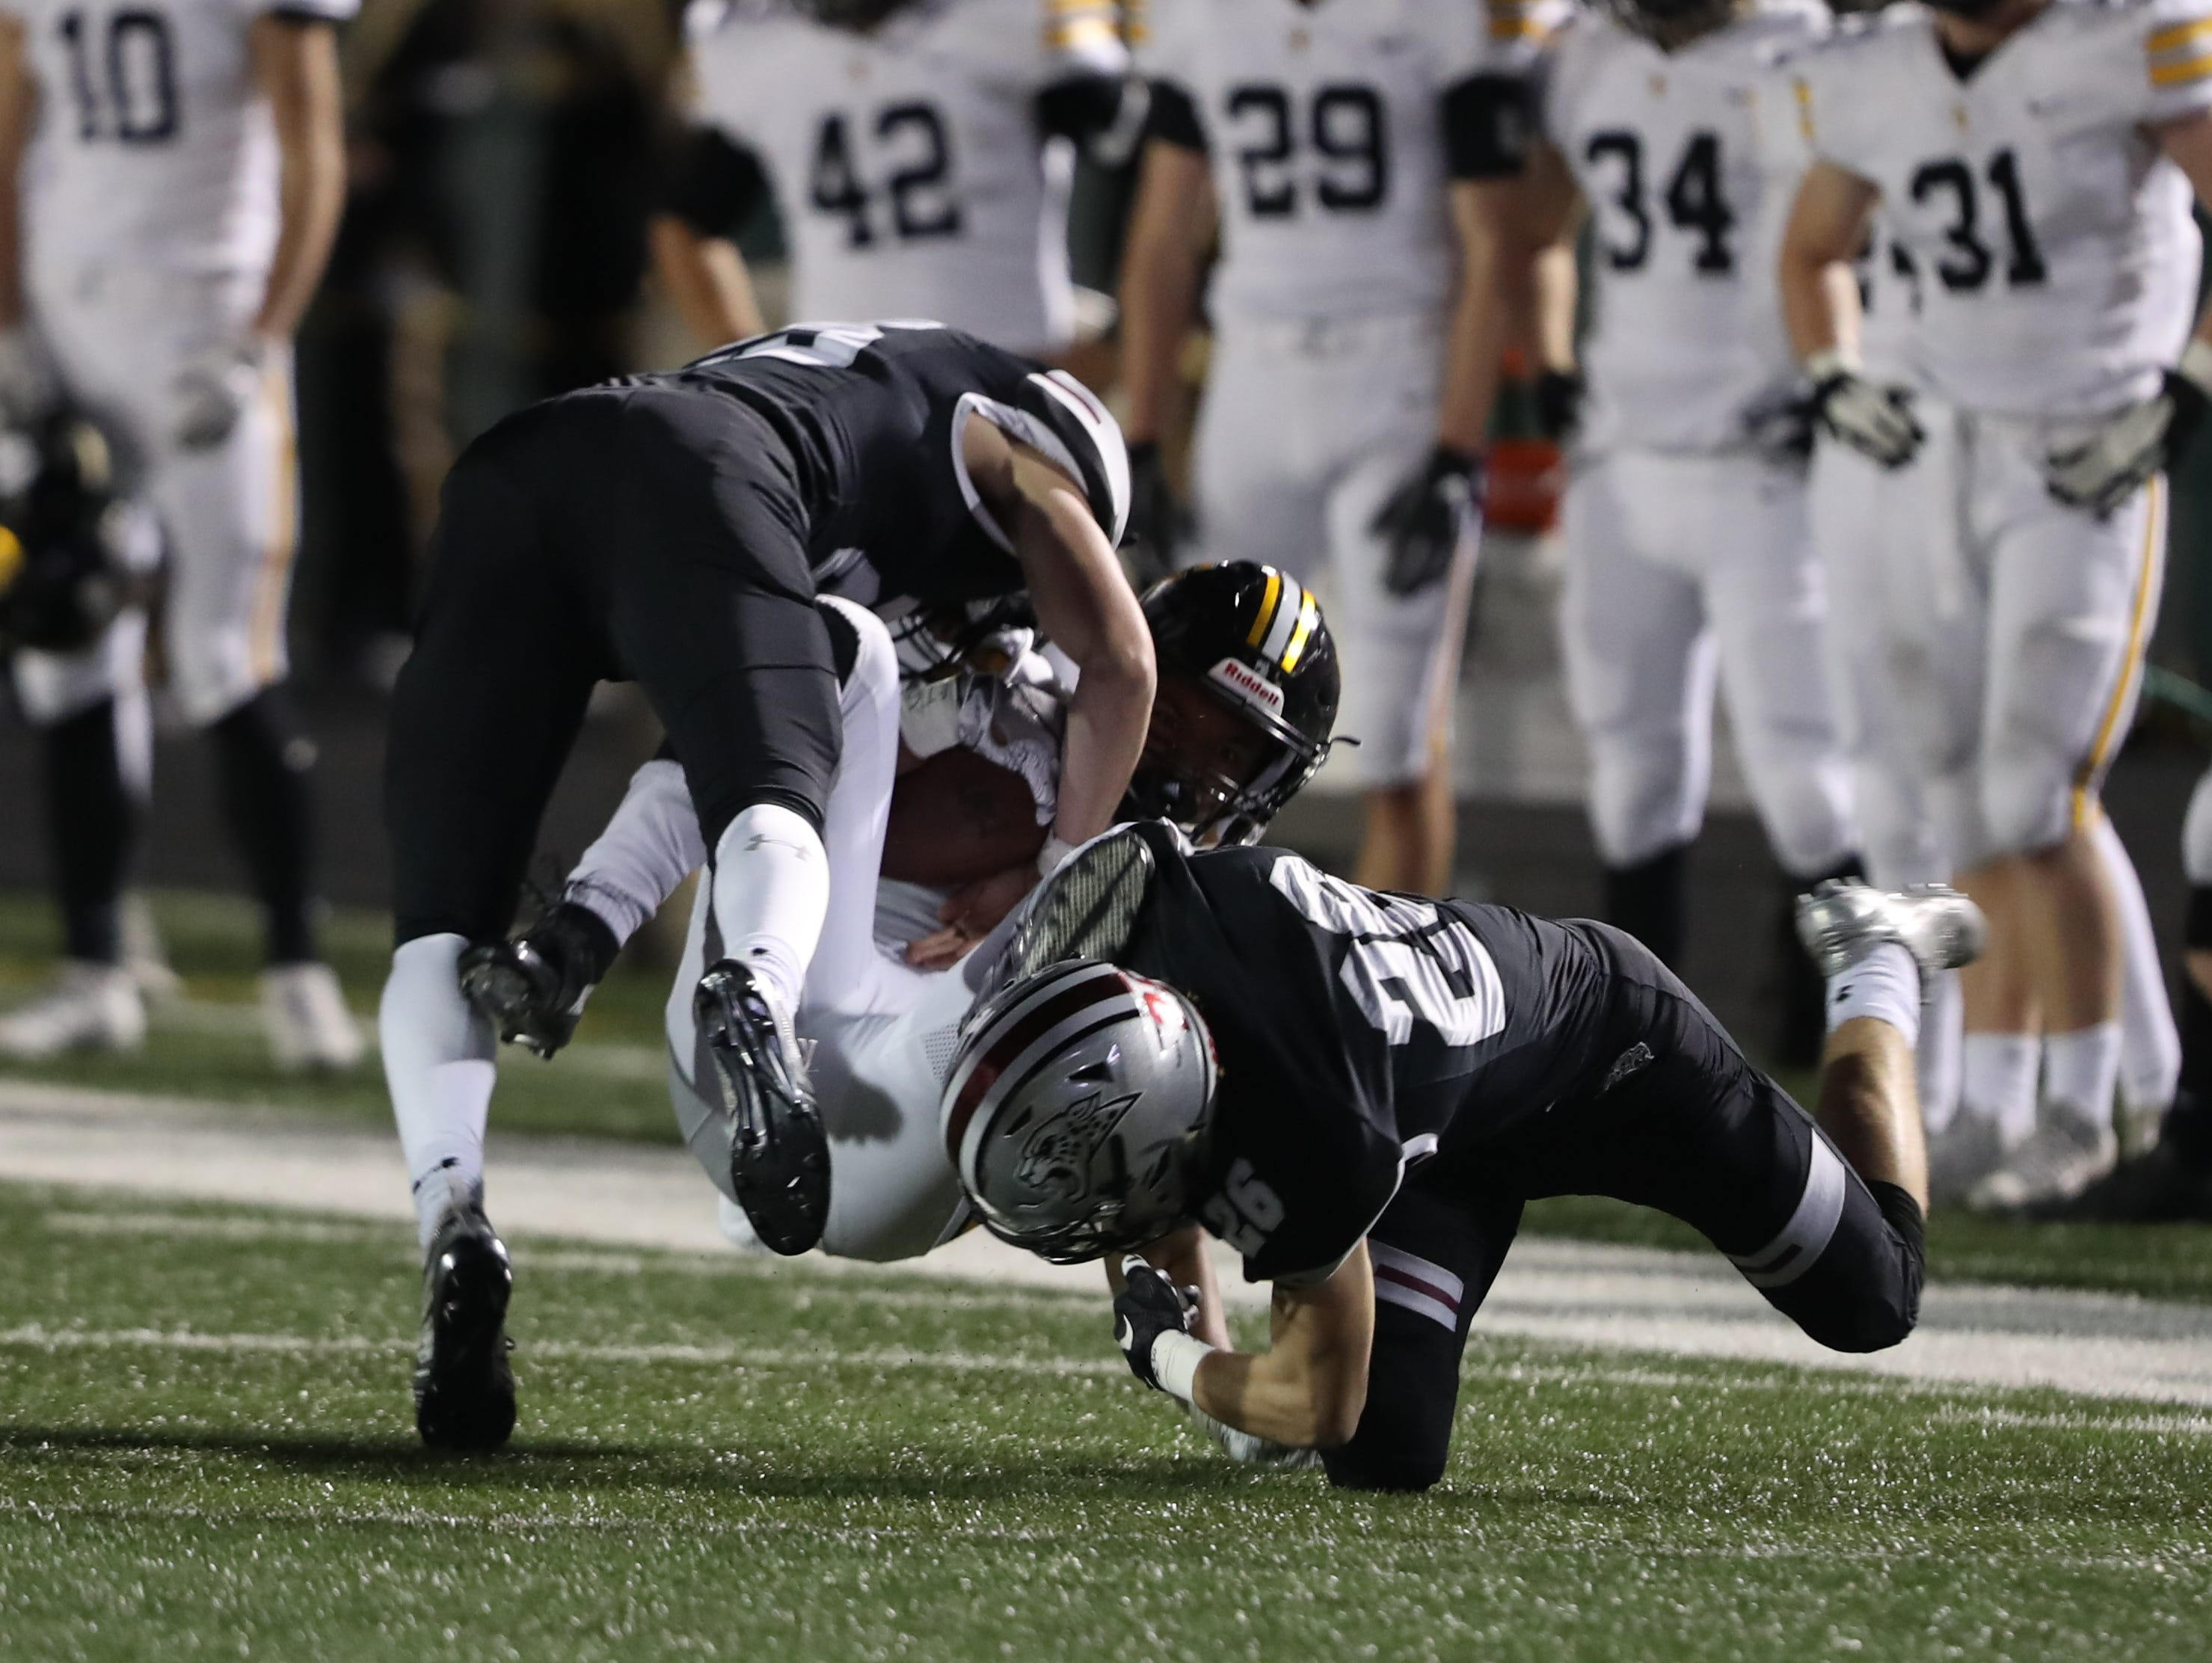 Southeast Polk Rams Isaiah Wagner (11) is tackled by the Ankeny Centennial Jaguars at Ankeny football stadium.